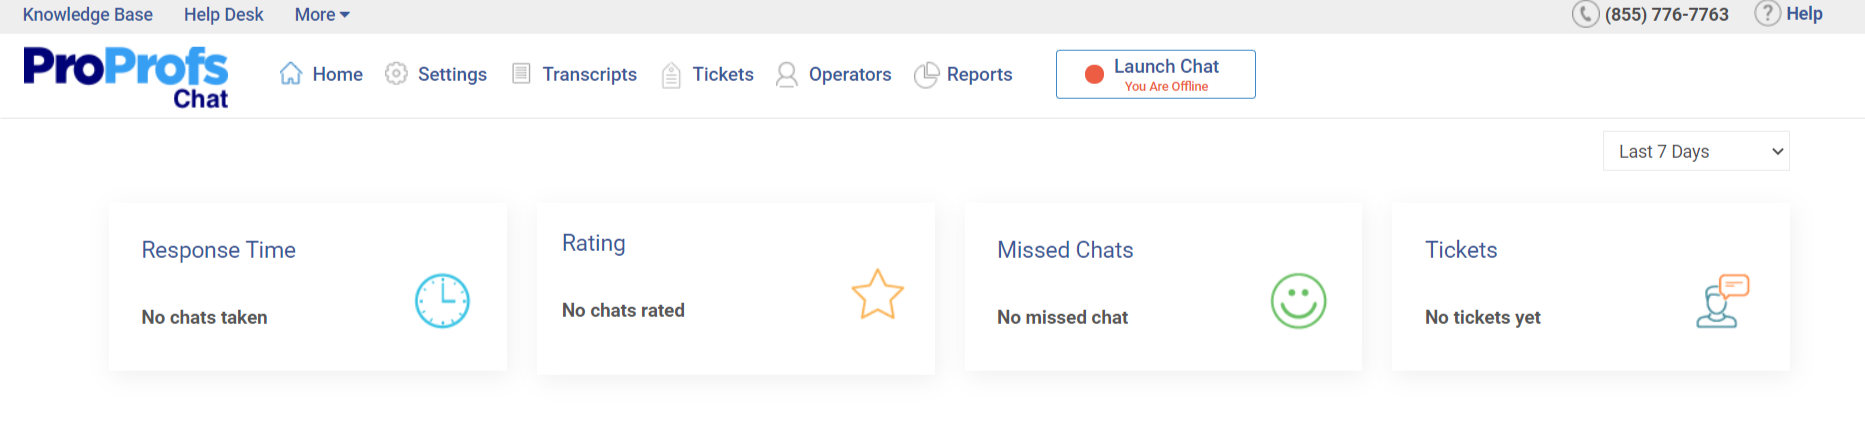 ProProfs Chat dashboard